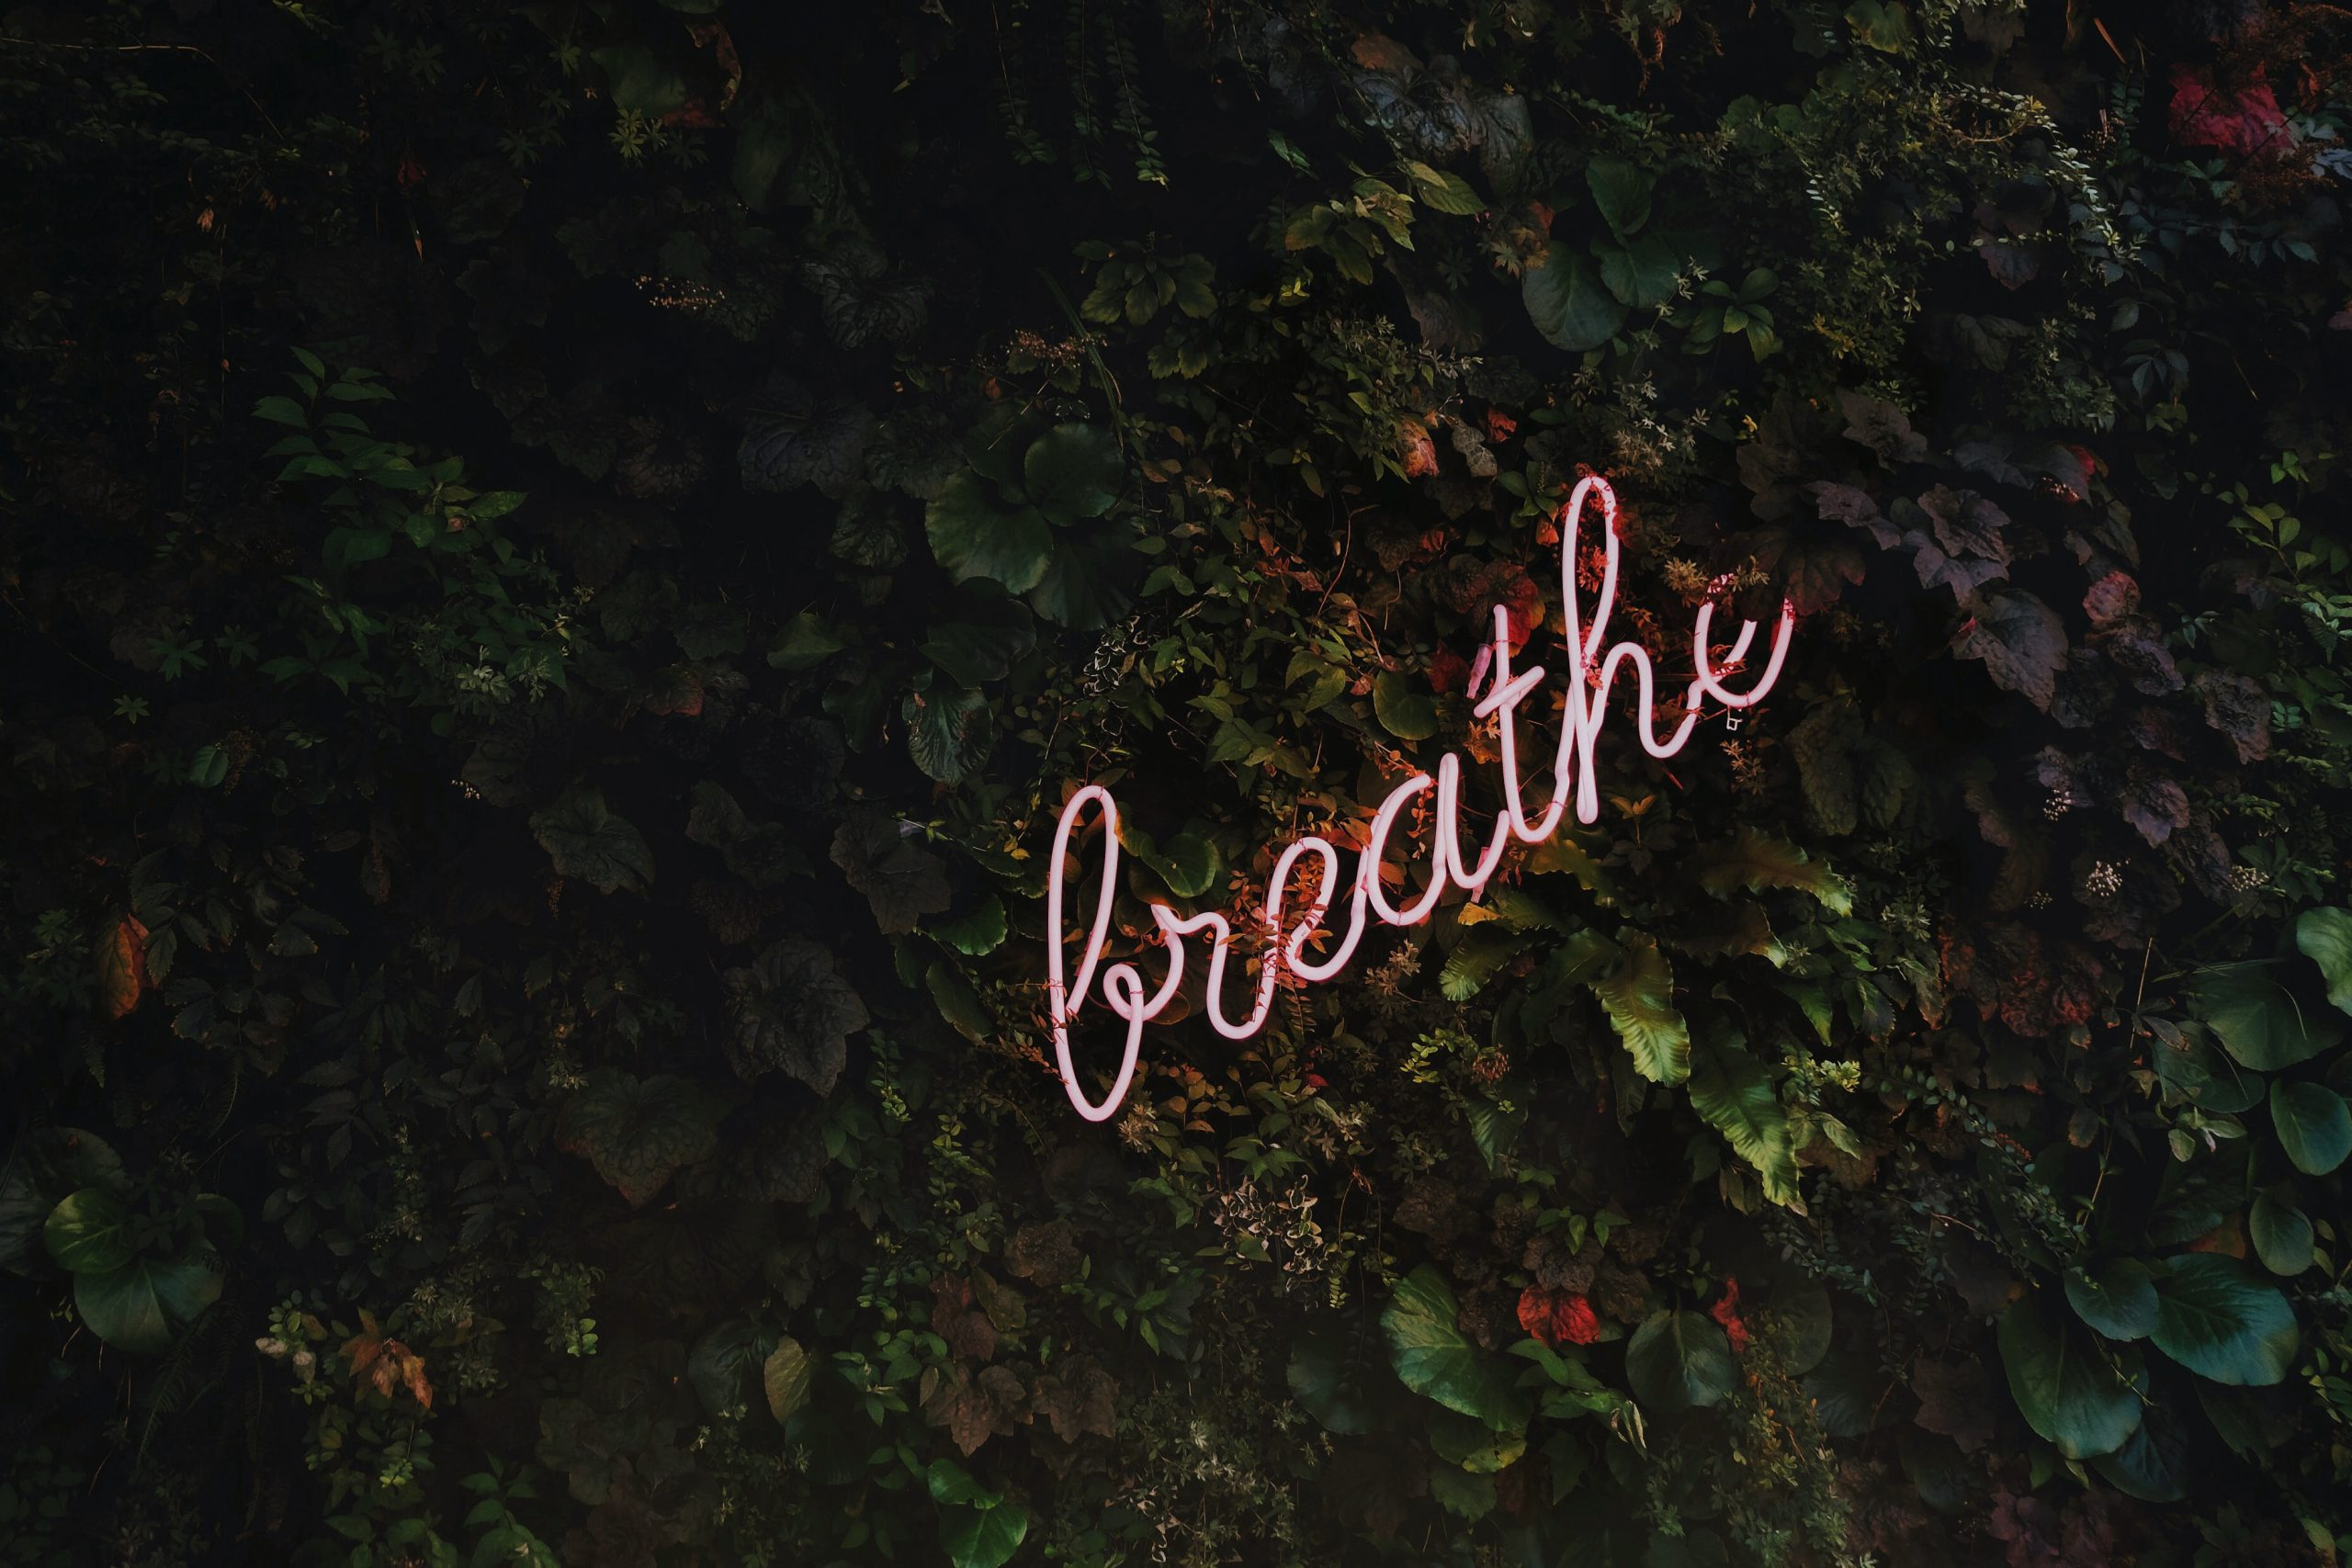 pink-neon-breath-4-steps-to-break-the-anxiety-cycle